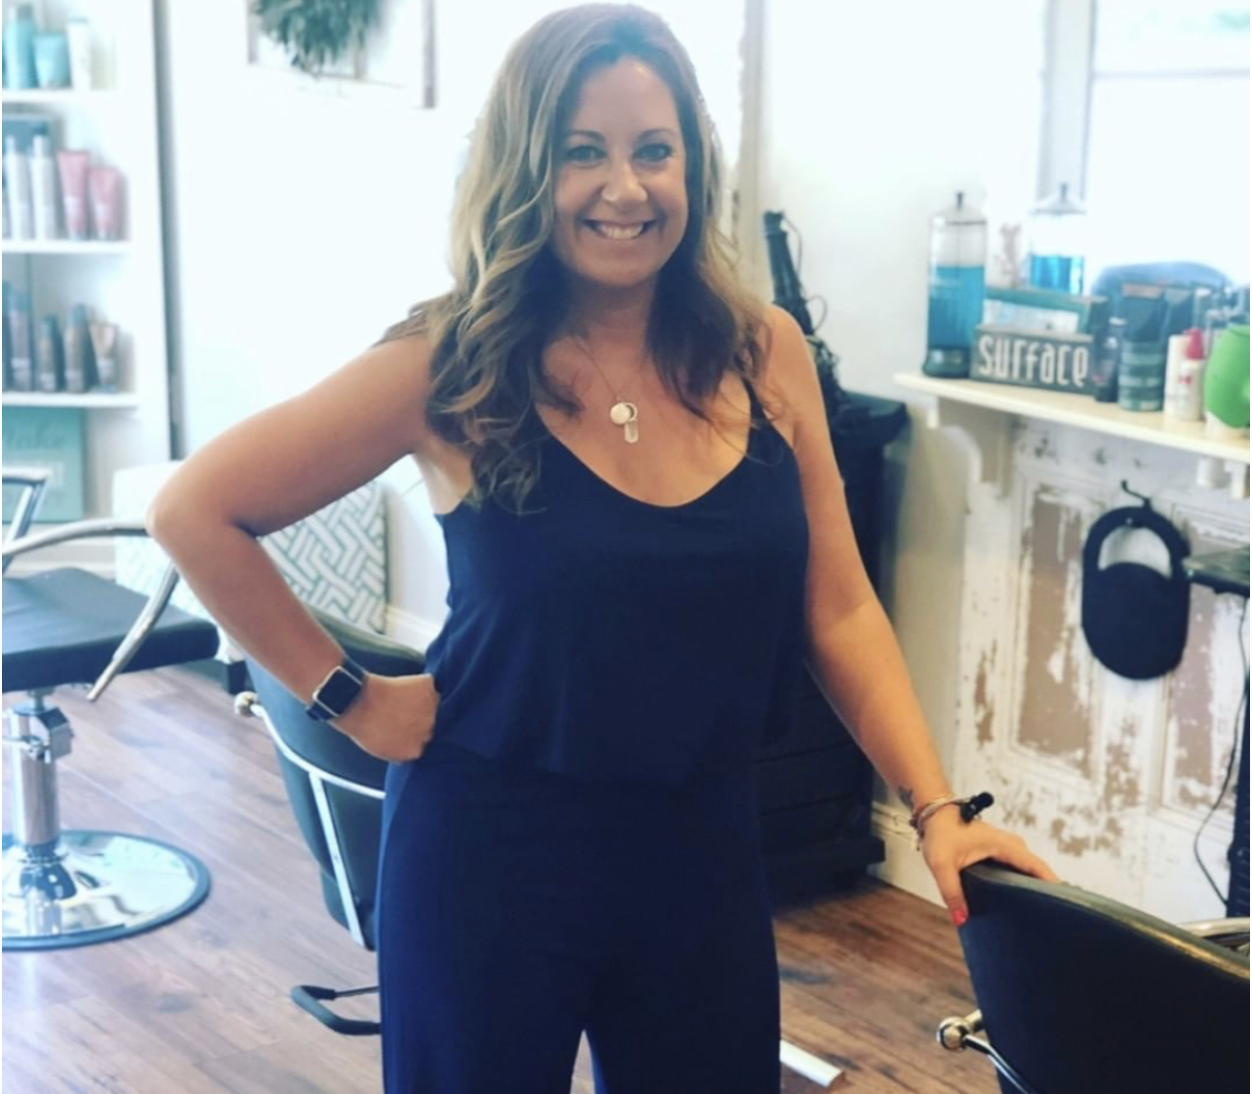 Kelli's way of teaching has changed the future for this hairdresser of 24 years! She put a spark back in my career and life! So thankful for her guidance and friendship! - Michelle Ward, Hairstylist & Look Good, Feel better MD facilitator